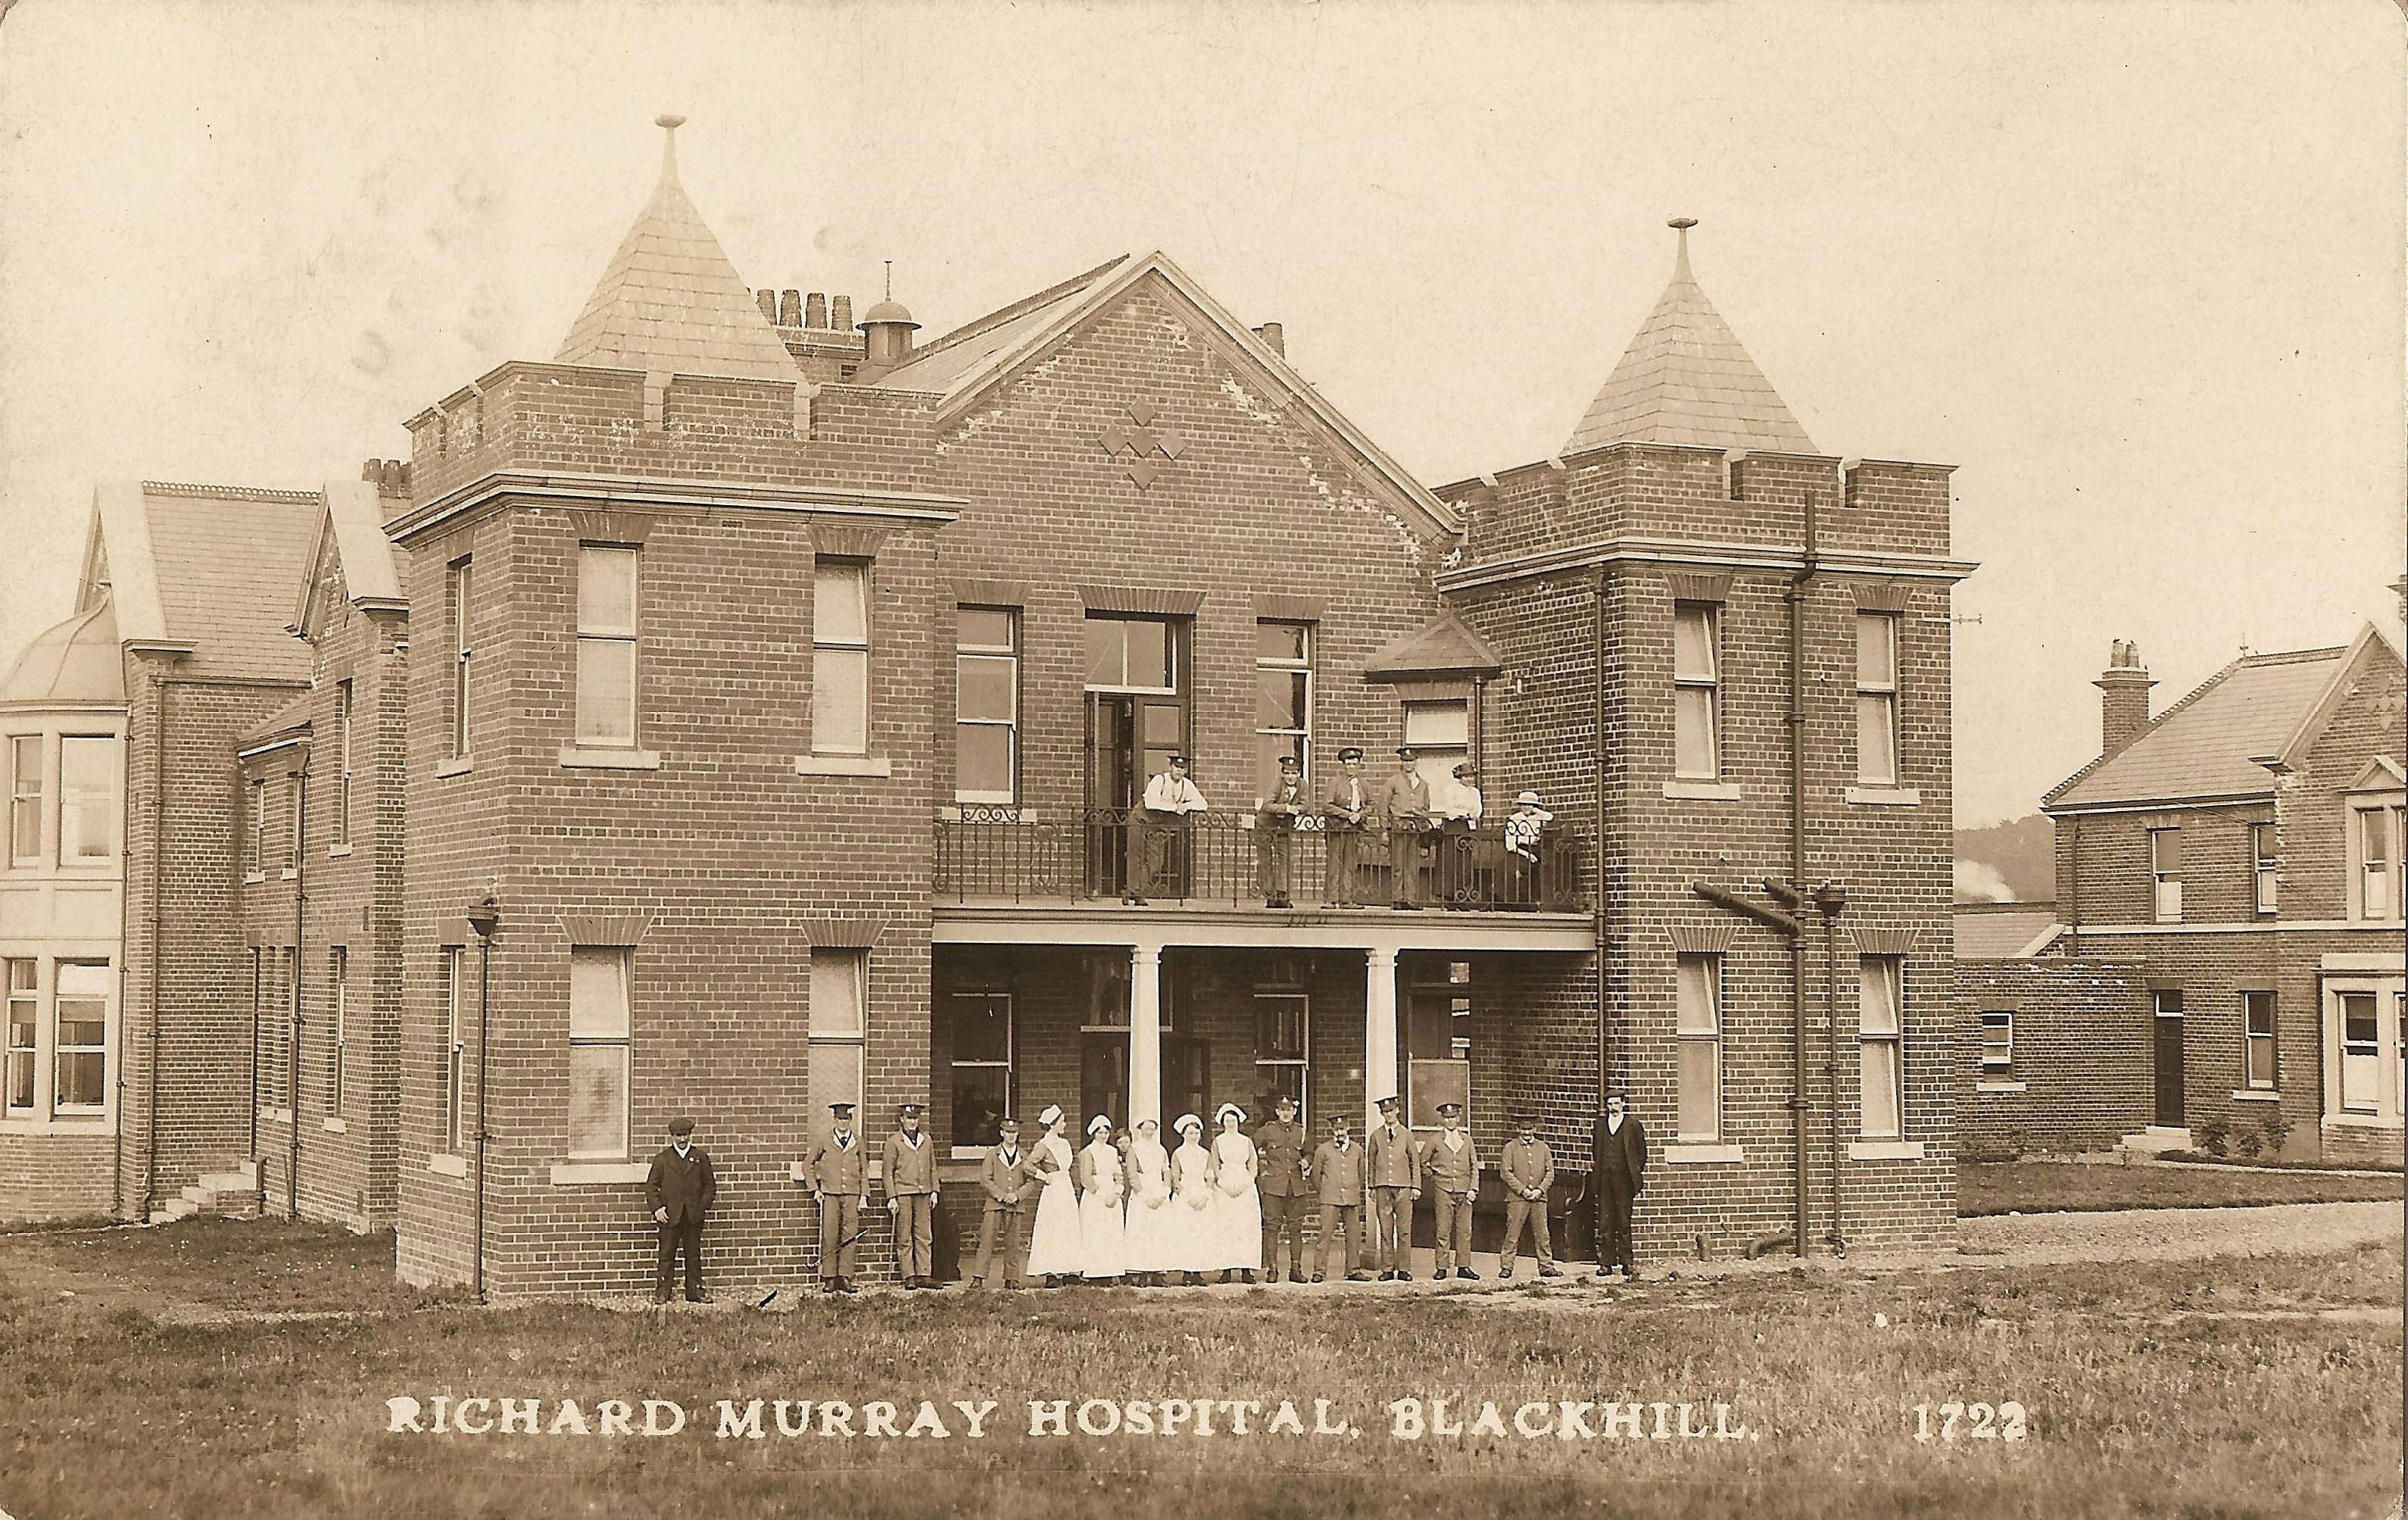 Richard Murray Hospital